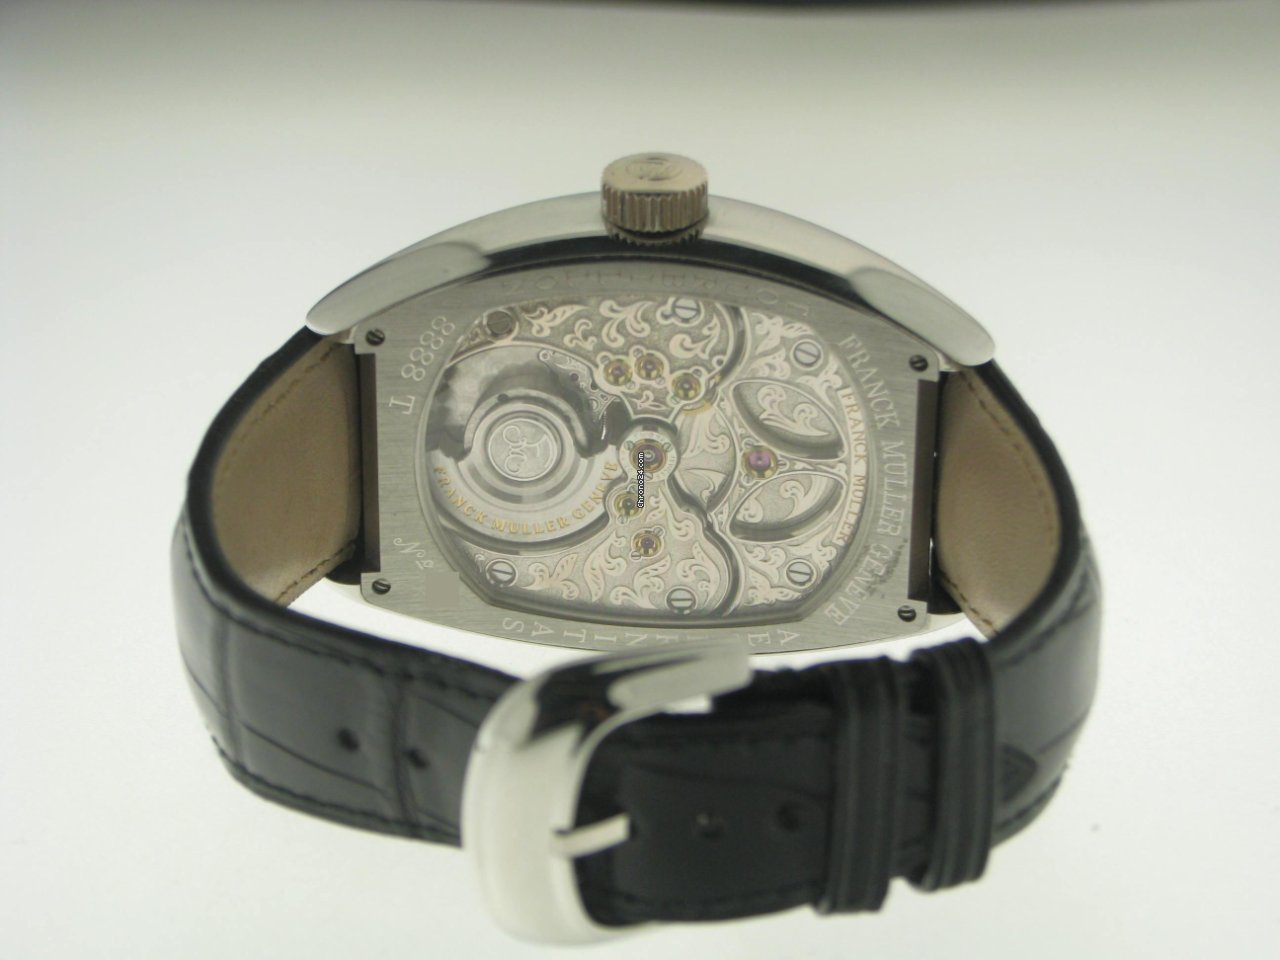 b8bf5a1750c Franck Muller Aeternitas Tourbillon for  88